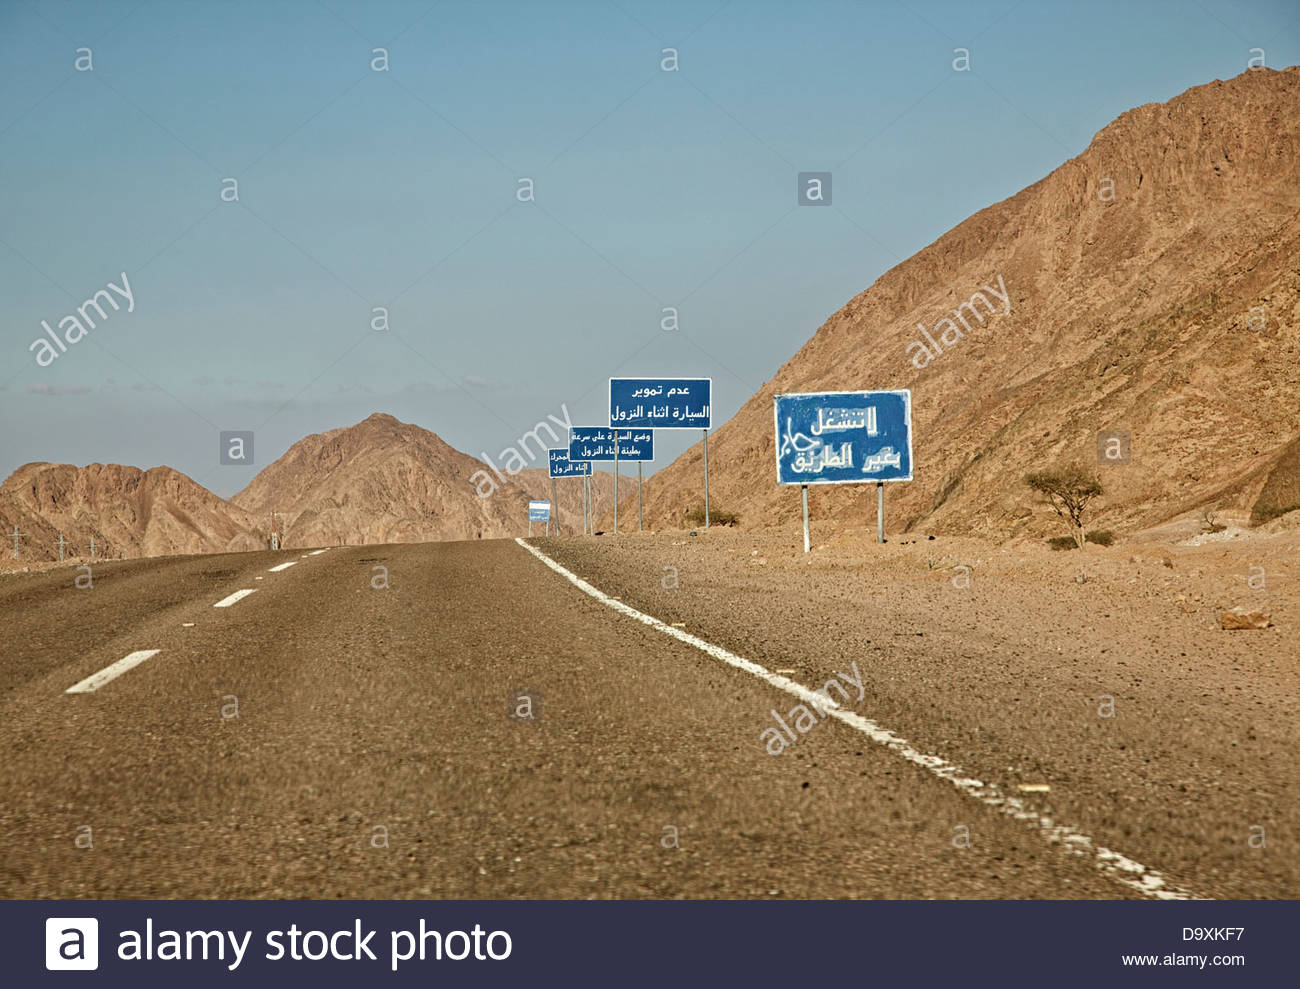 Egypt, View of empty road - Stock Image